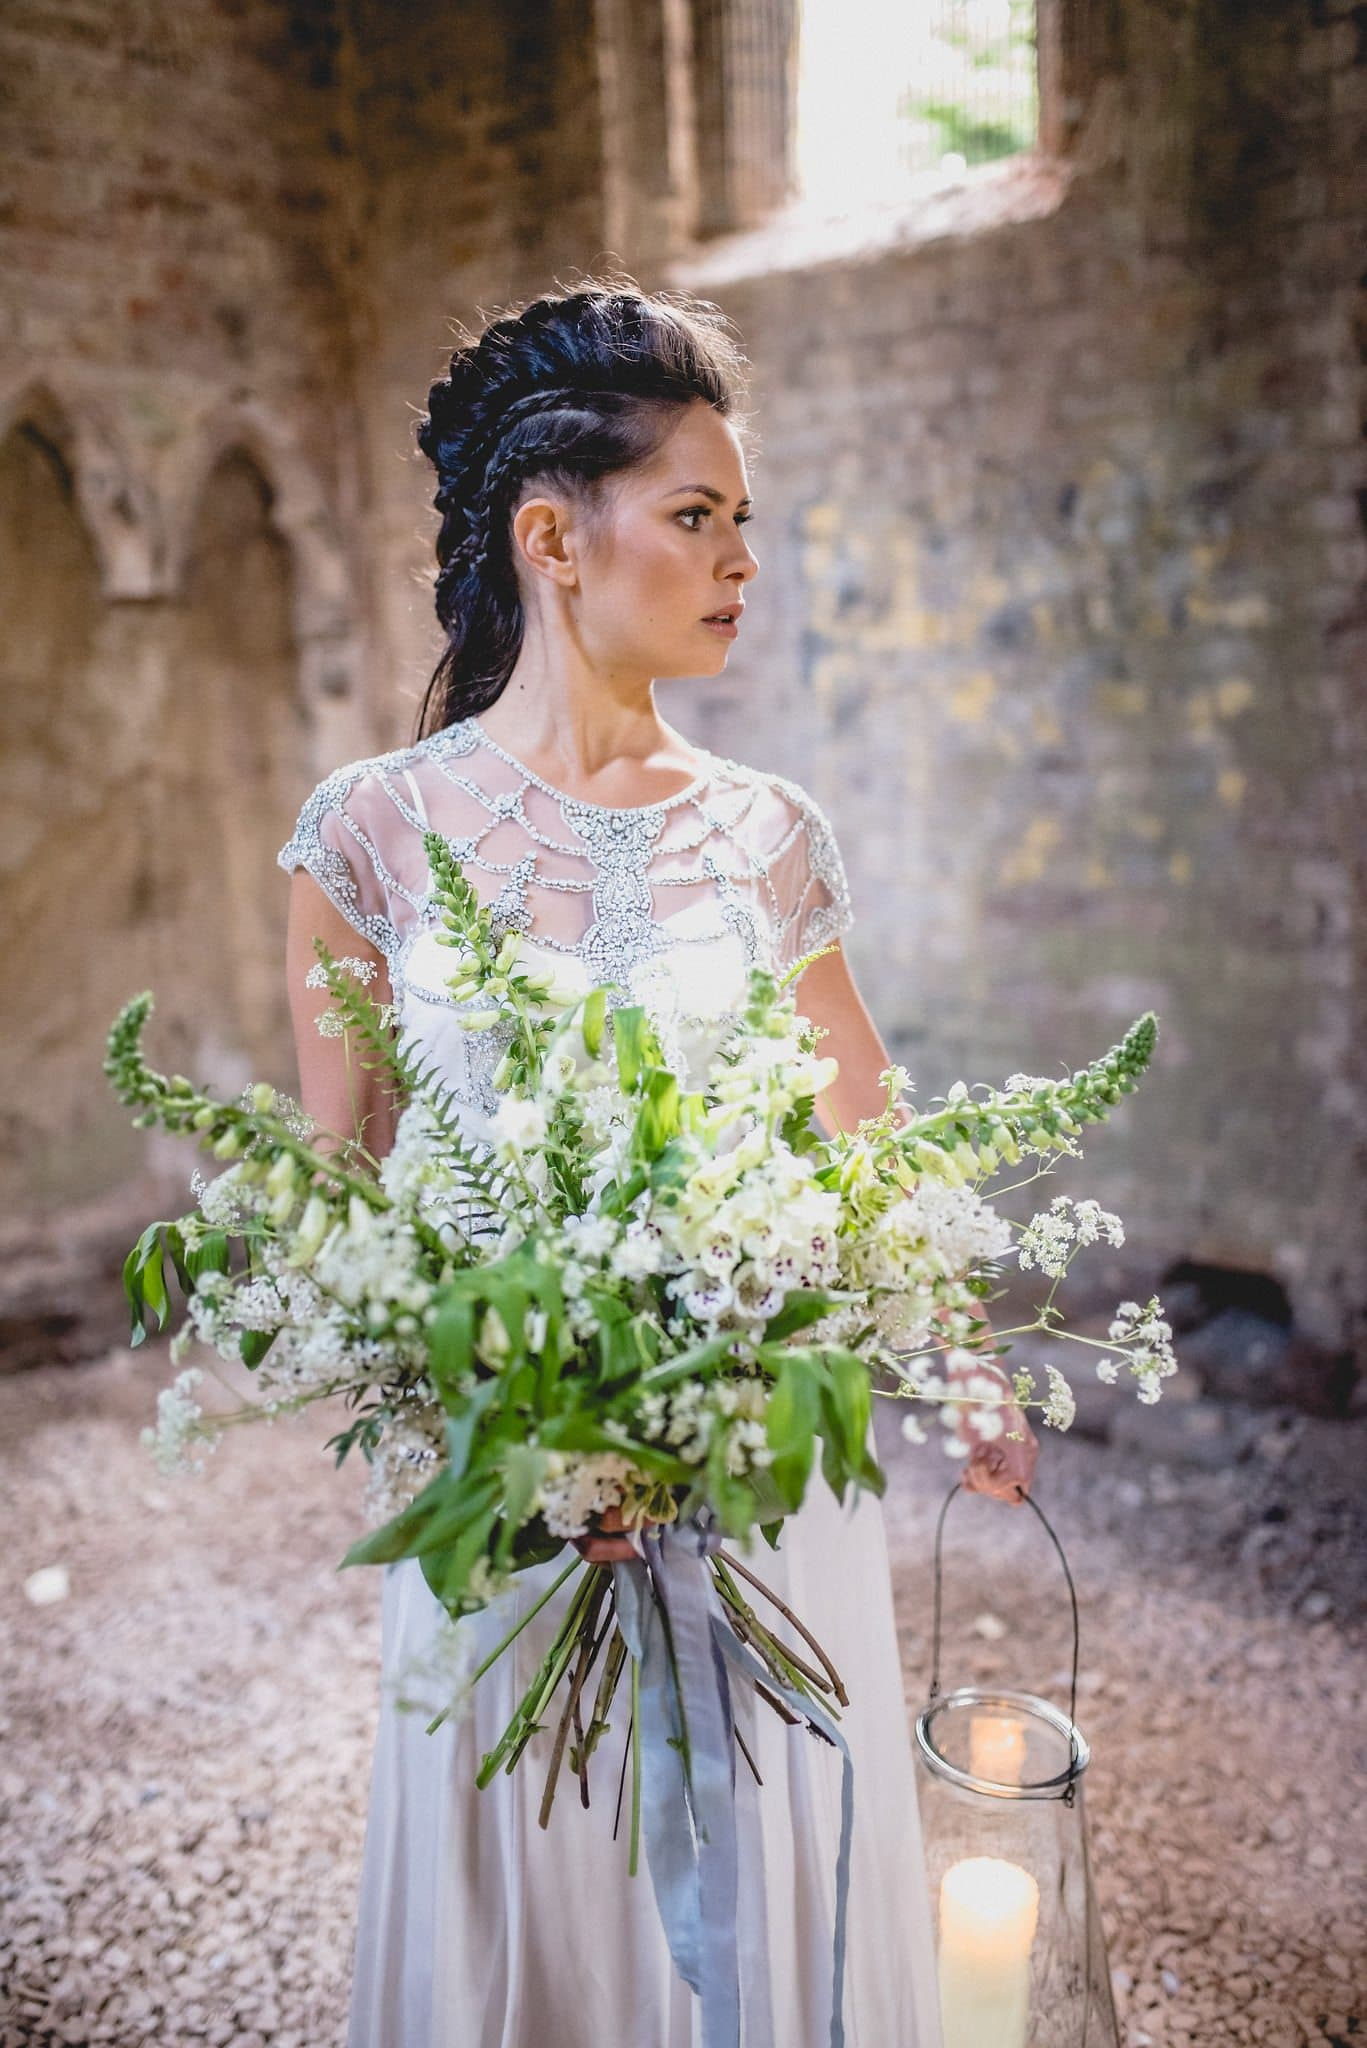 Bride with elaborately braided hair carries large bouquet and storm lantern with candle